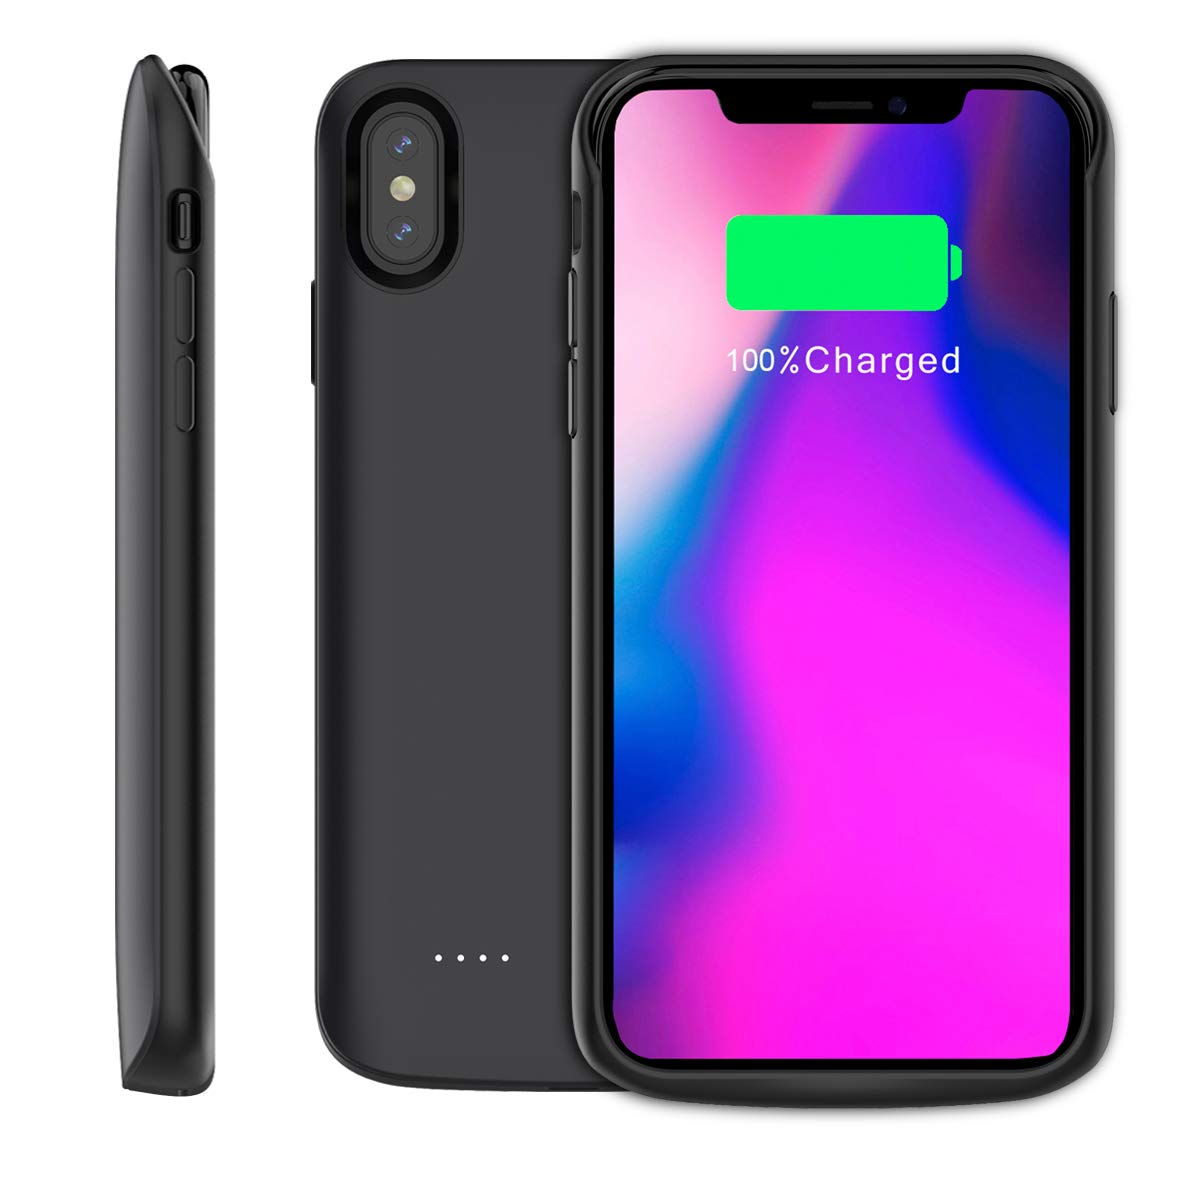 Compatible iPhone Xs Max Battery Case, 6000mAh Extended Battery Rechargeable Backup Fast Charging Case, Impact Resistant Power Bank Juice Full Edge Protection for iPhone Xs Max (Black)